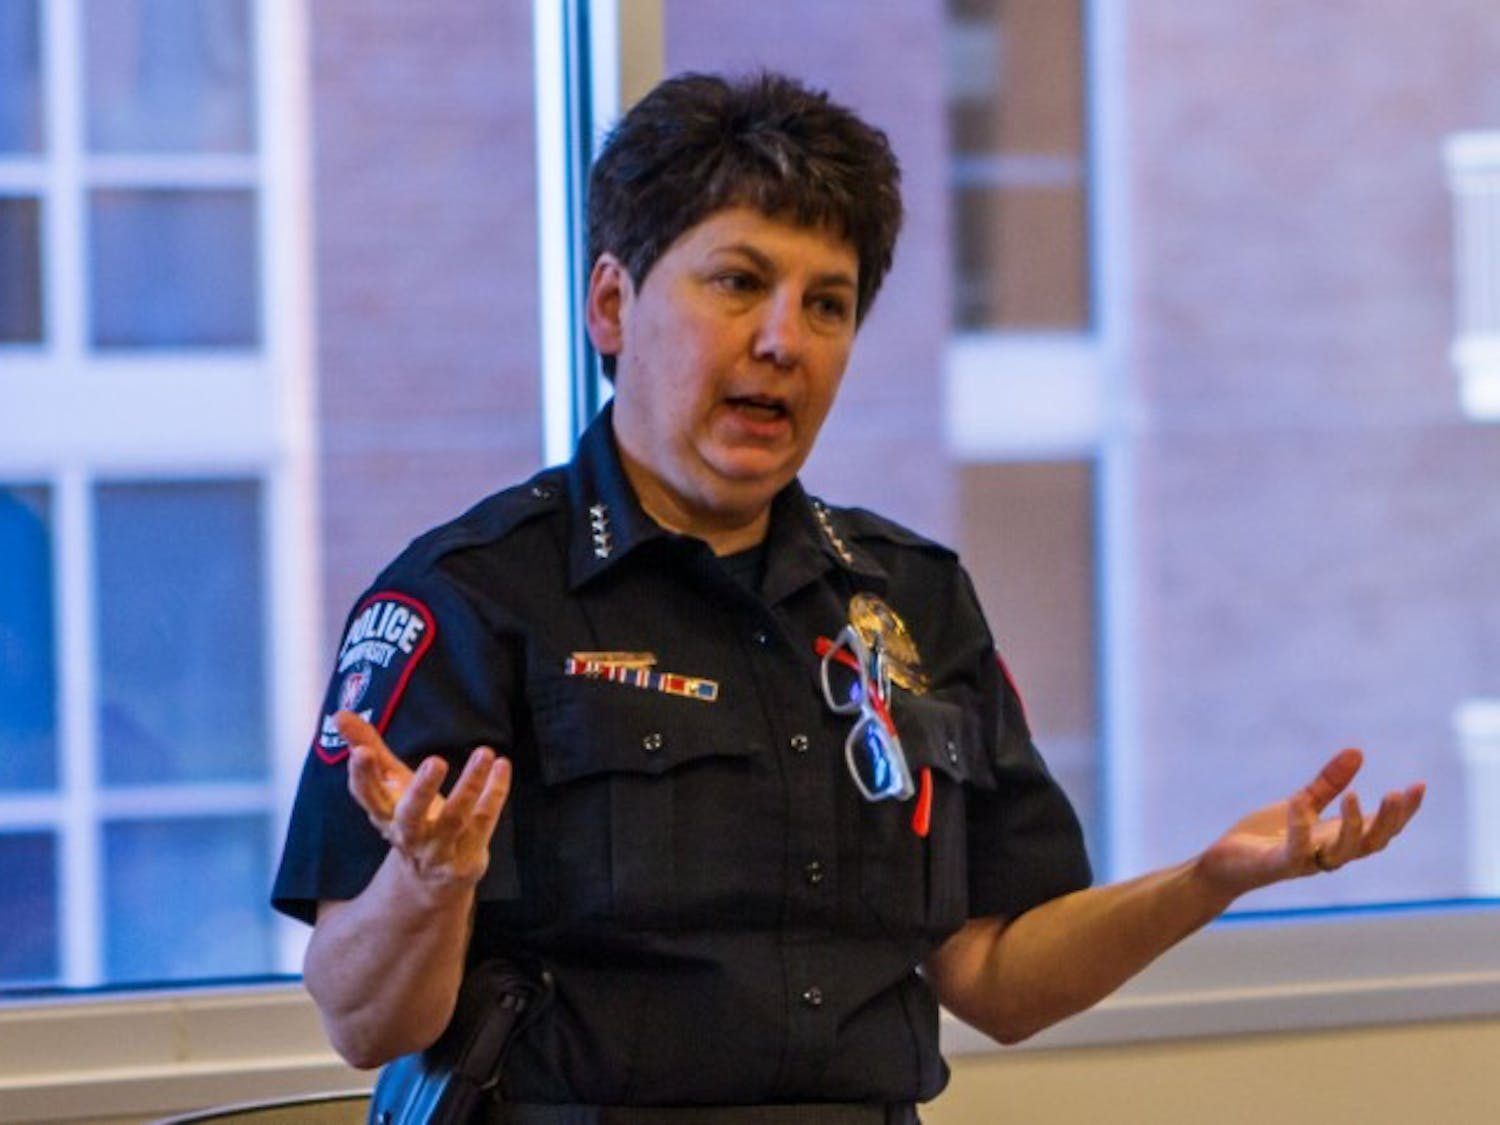 The University of Wisconsin Police Department has recently come out against campus concealed carry.